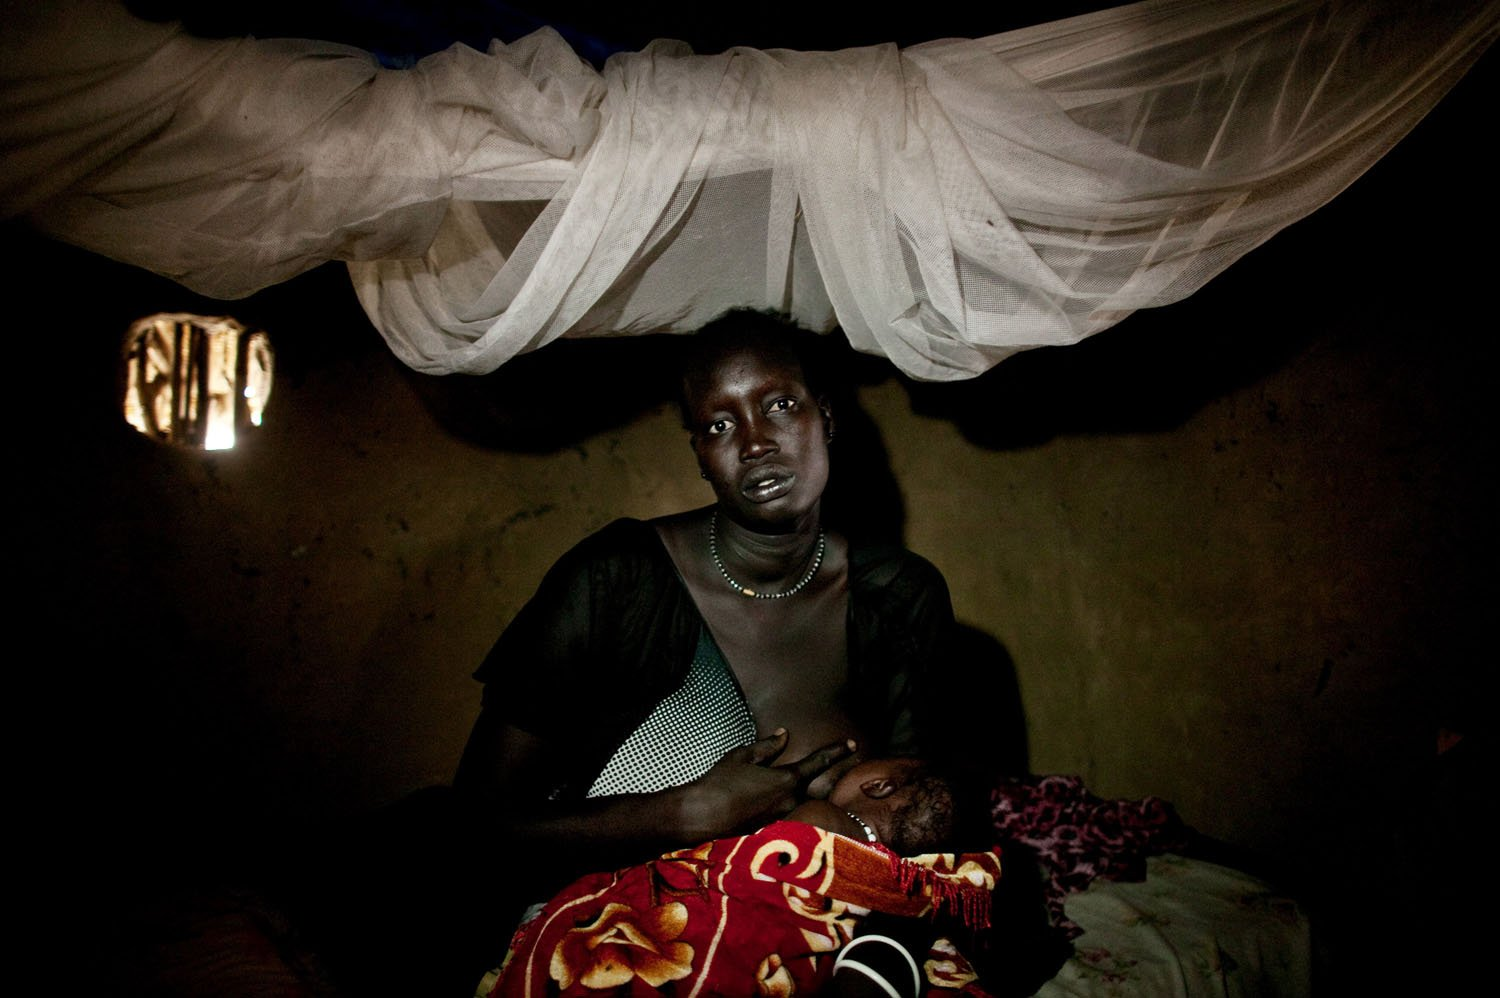 A survivor of a recent massacre in Fangak, southern Sudan on Thursday, April 7, 2011. The massacre occurred when forces loyal to rebel General George Athor attacked the to town of Fangak on Feb 9th and 10th, 2011. When the fighting ended, more than 200 people were dead, many of whom were civilians. Gen. Athor began a rebellion in April 2010 after losing gubernatorial elections in southern Sudan's Jonglei state. The rebellion has expanded significantly since then with large numbers of youth joining Athor's ranks. Southern Sudan is set to become the world's newest country in July 2011.